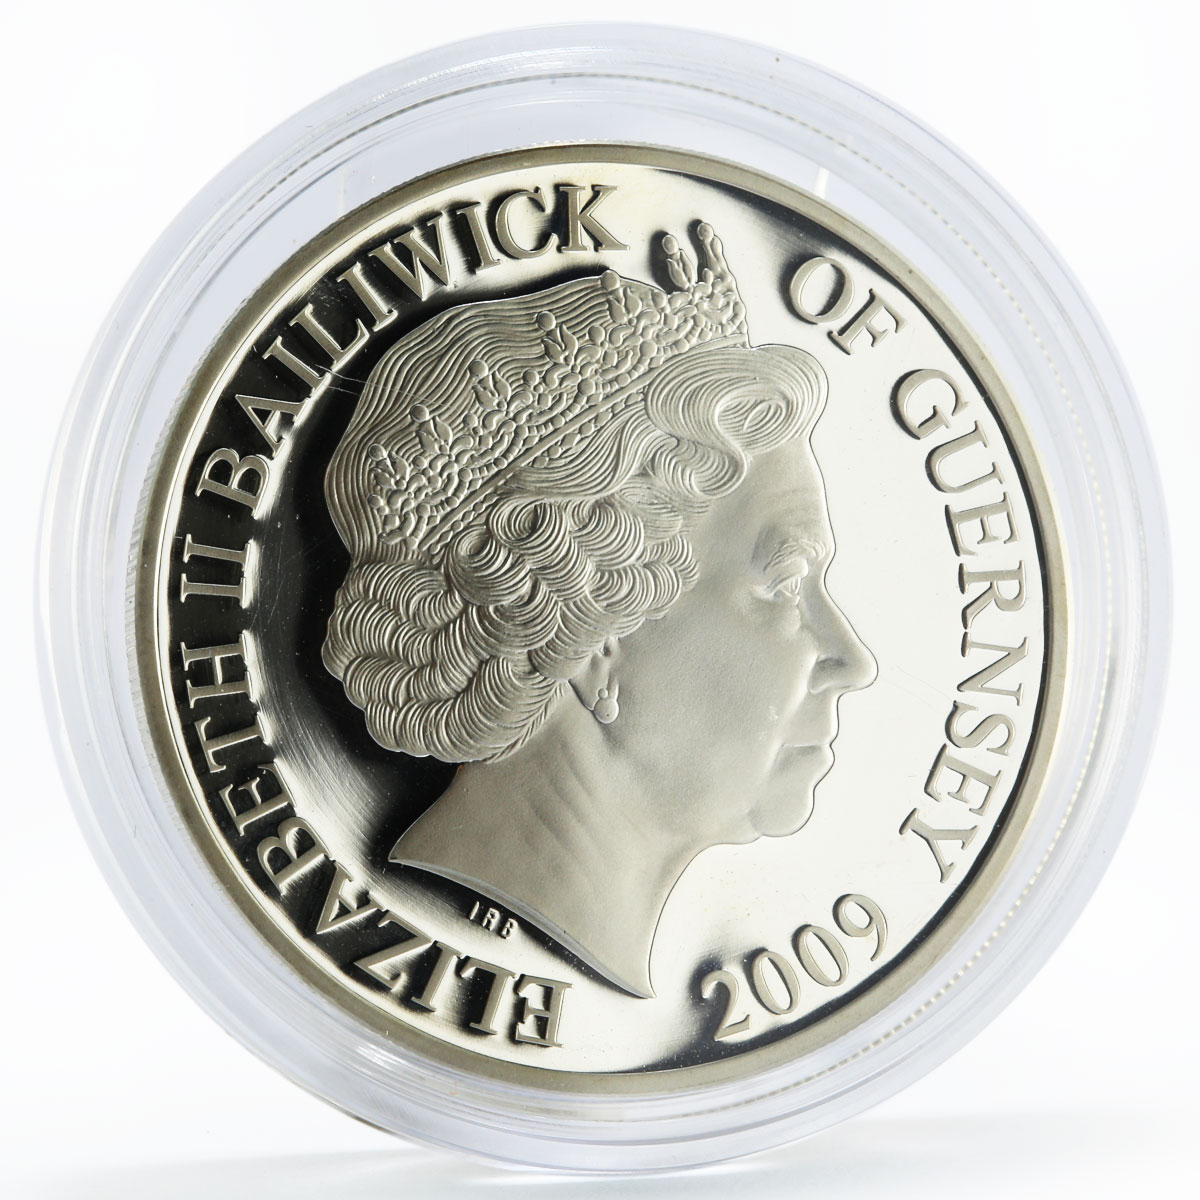 Bailiwick of Guernsey 5 pounds Endeavour Ship silver coin 2009